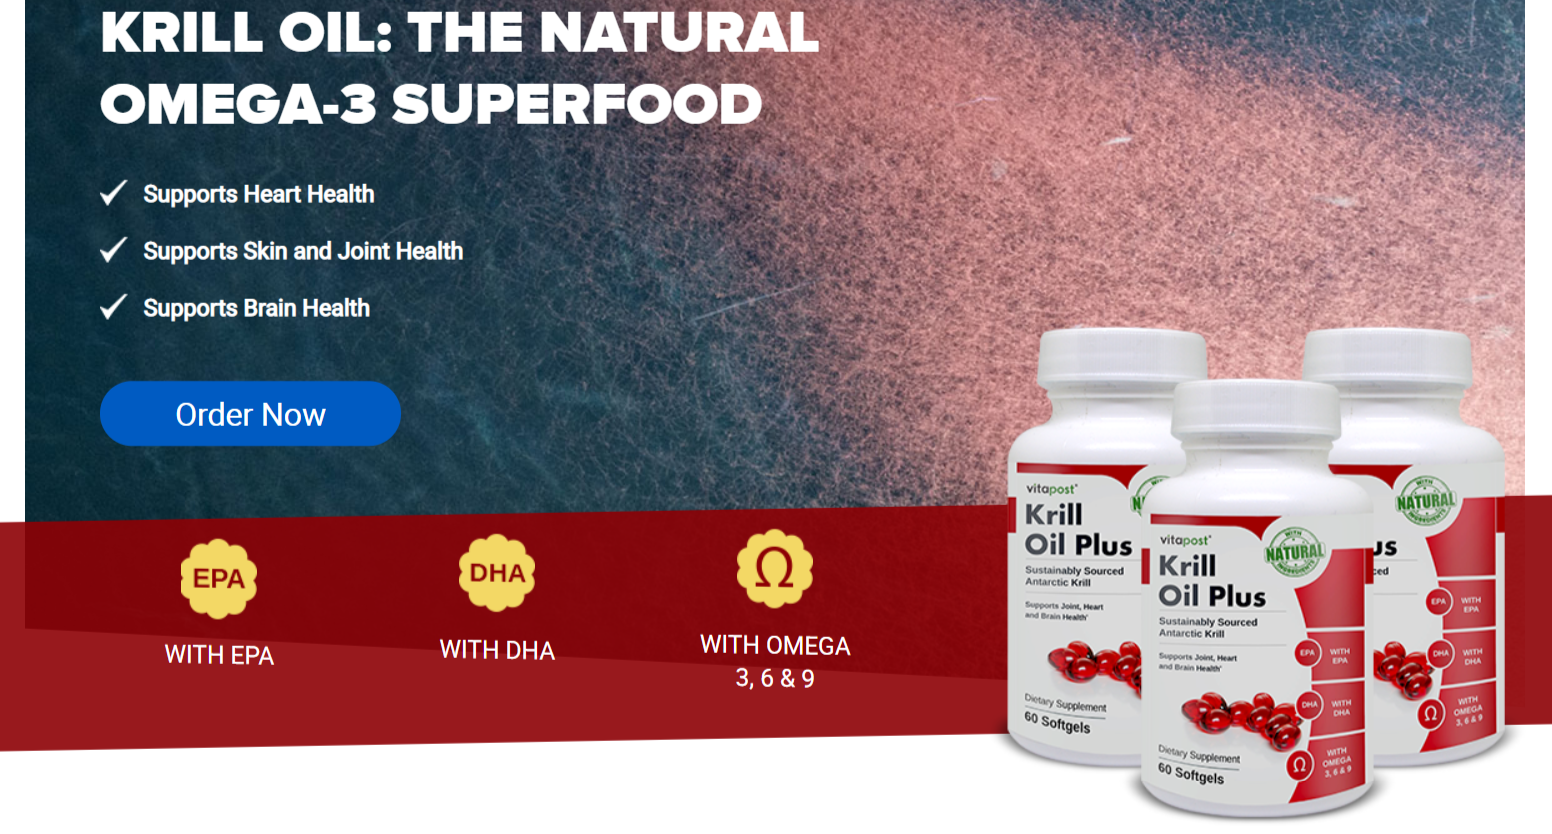 Krill Oil Plus By Vitapost